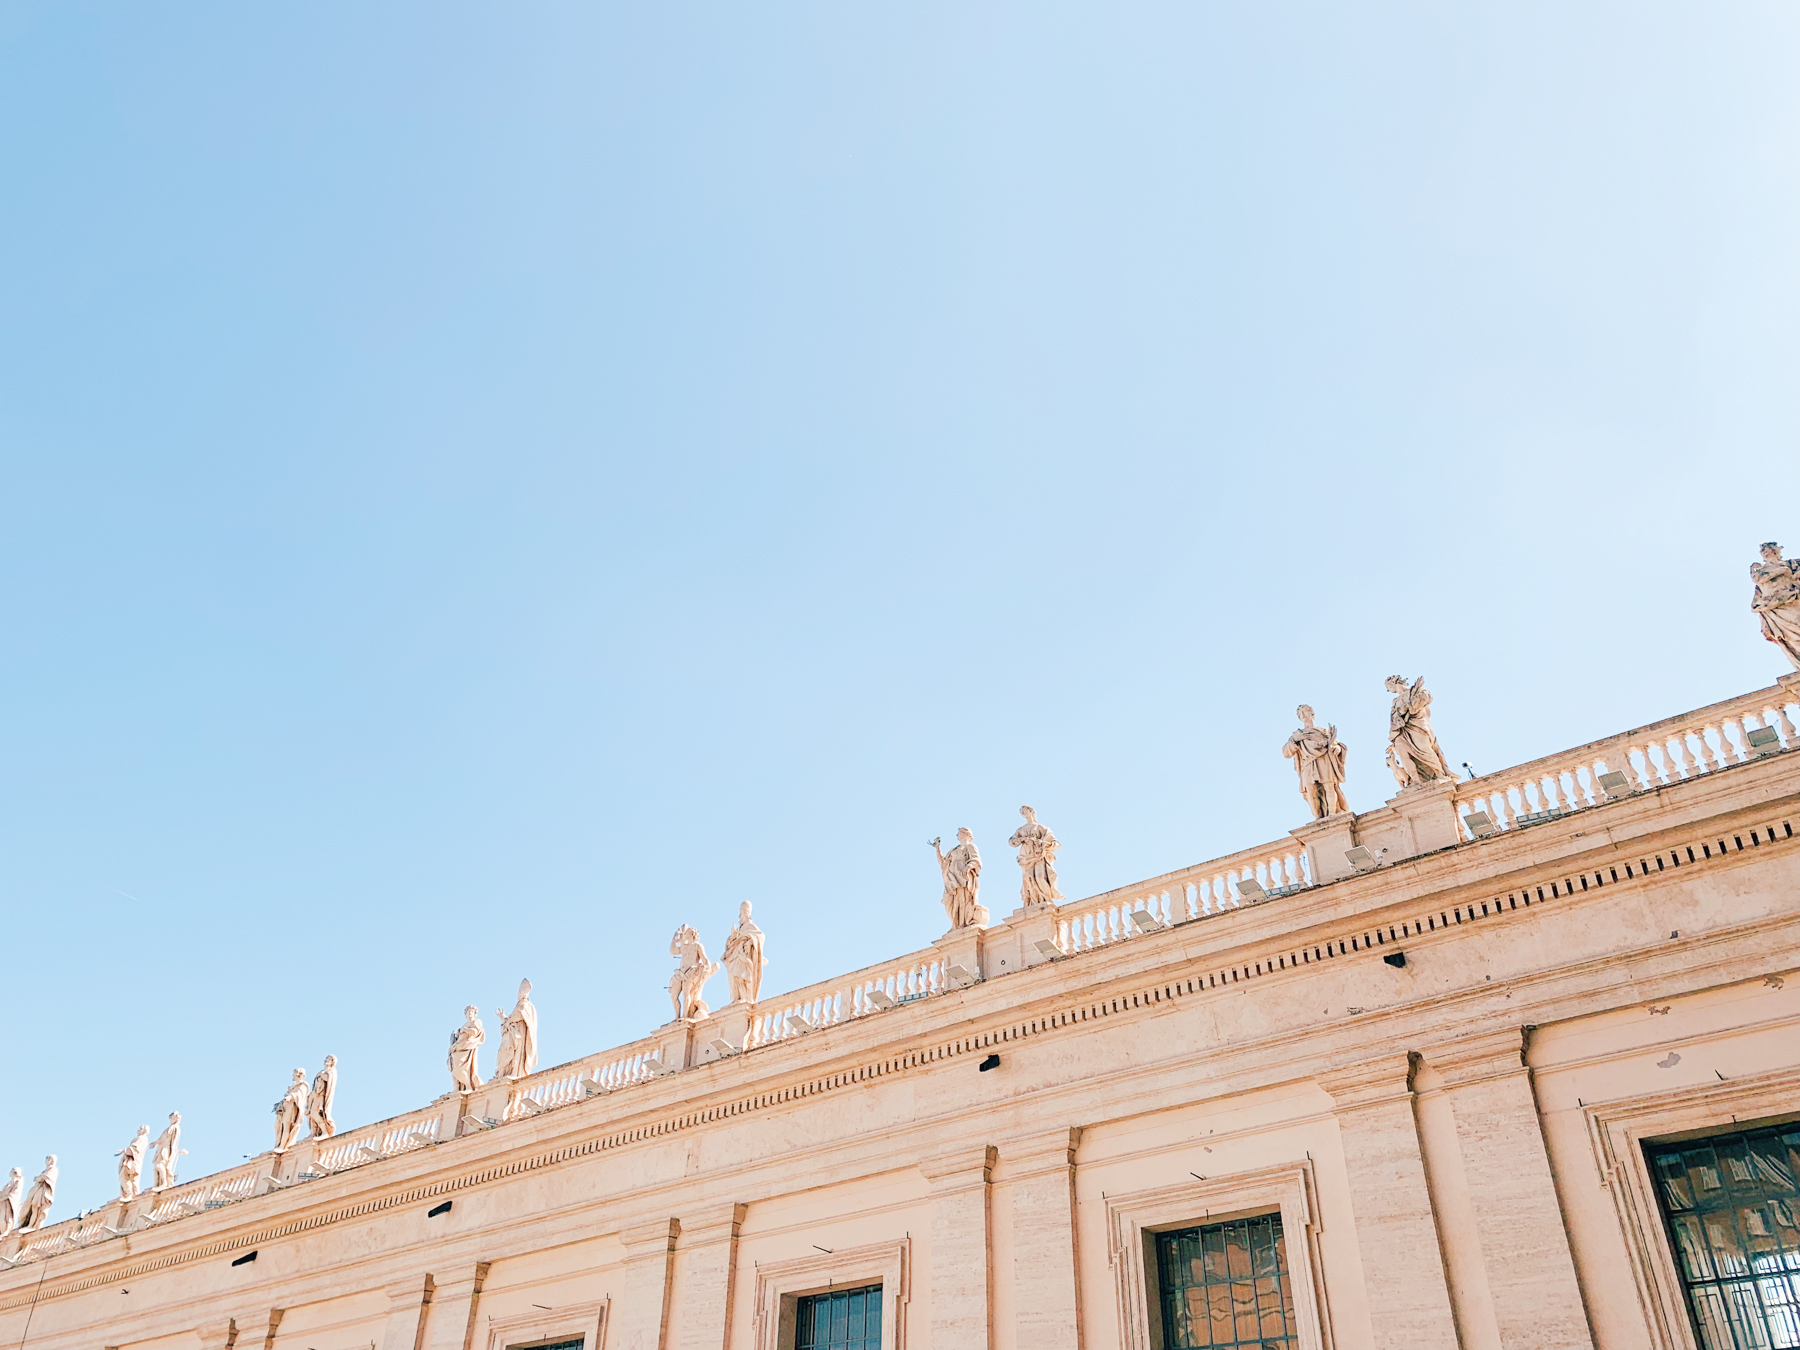 Views from St. Peter's Square.